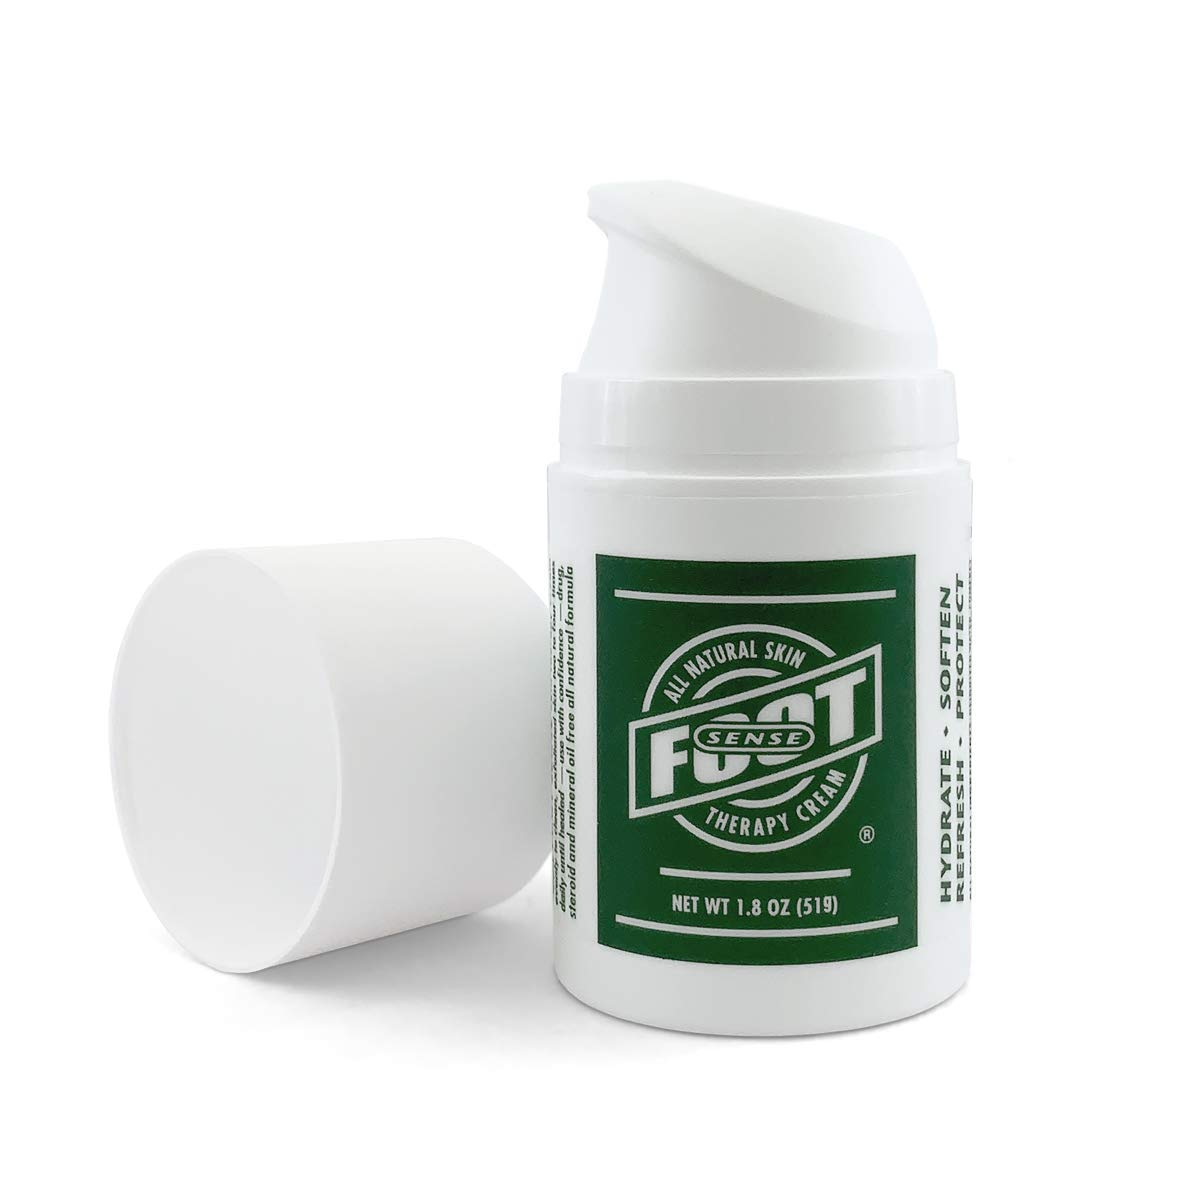 Tea Tree Oil Foot and Skin Therapy Cream - Repairs and Treats Cracked, Dry, Itchy Skin, Heels and Calluses - Athletes Foot, Jock Itch, Ringworm - Made in USA - Use on Feet, Hands, Elbows